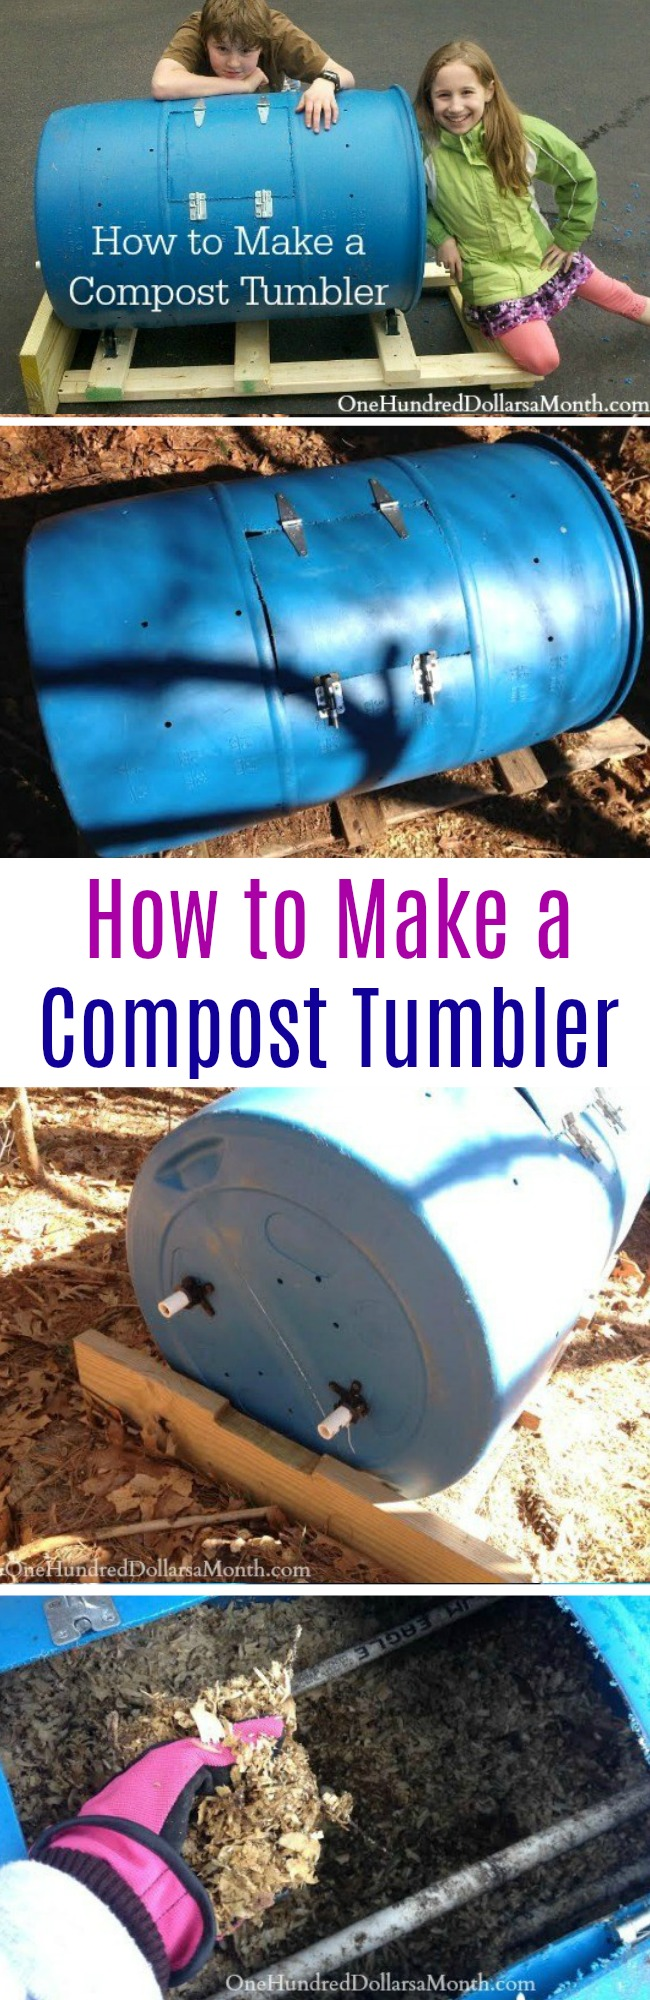 DIY – How to Make a Compost Tumbler